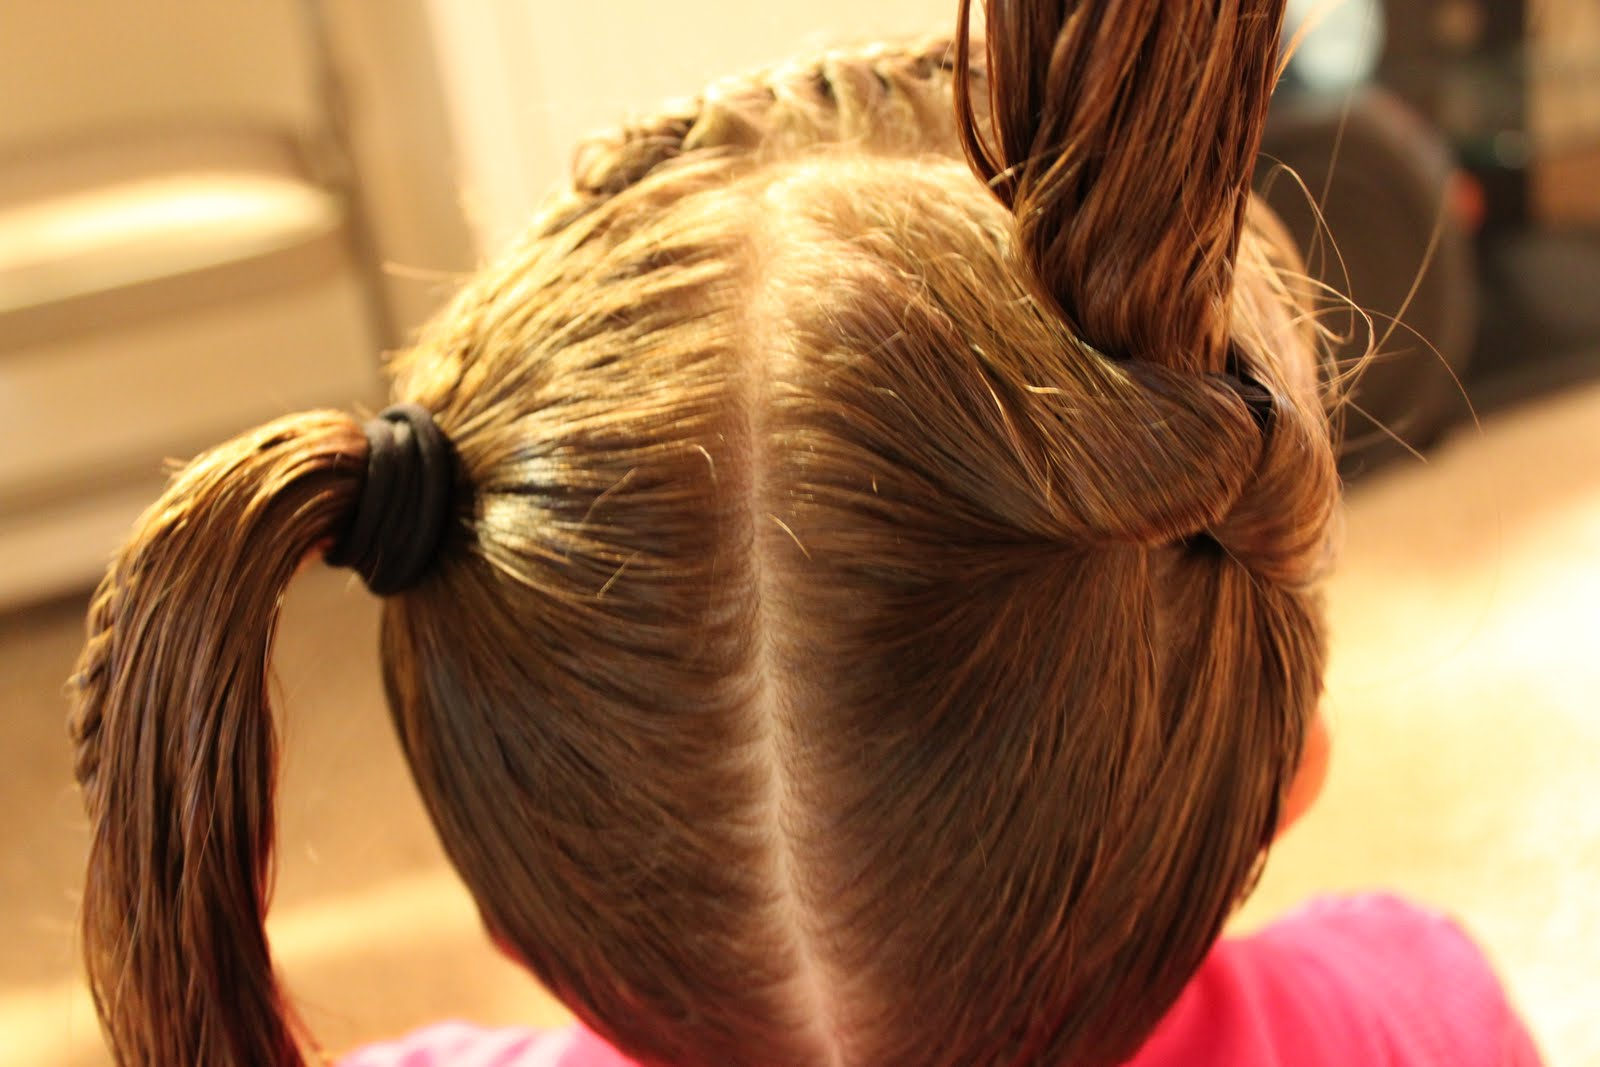 Hairstyles for Girls The Wright Hair: Front French Braid